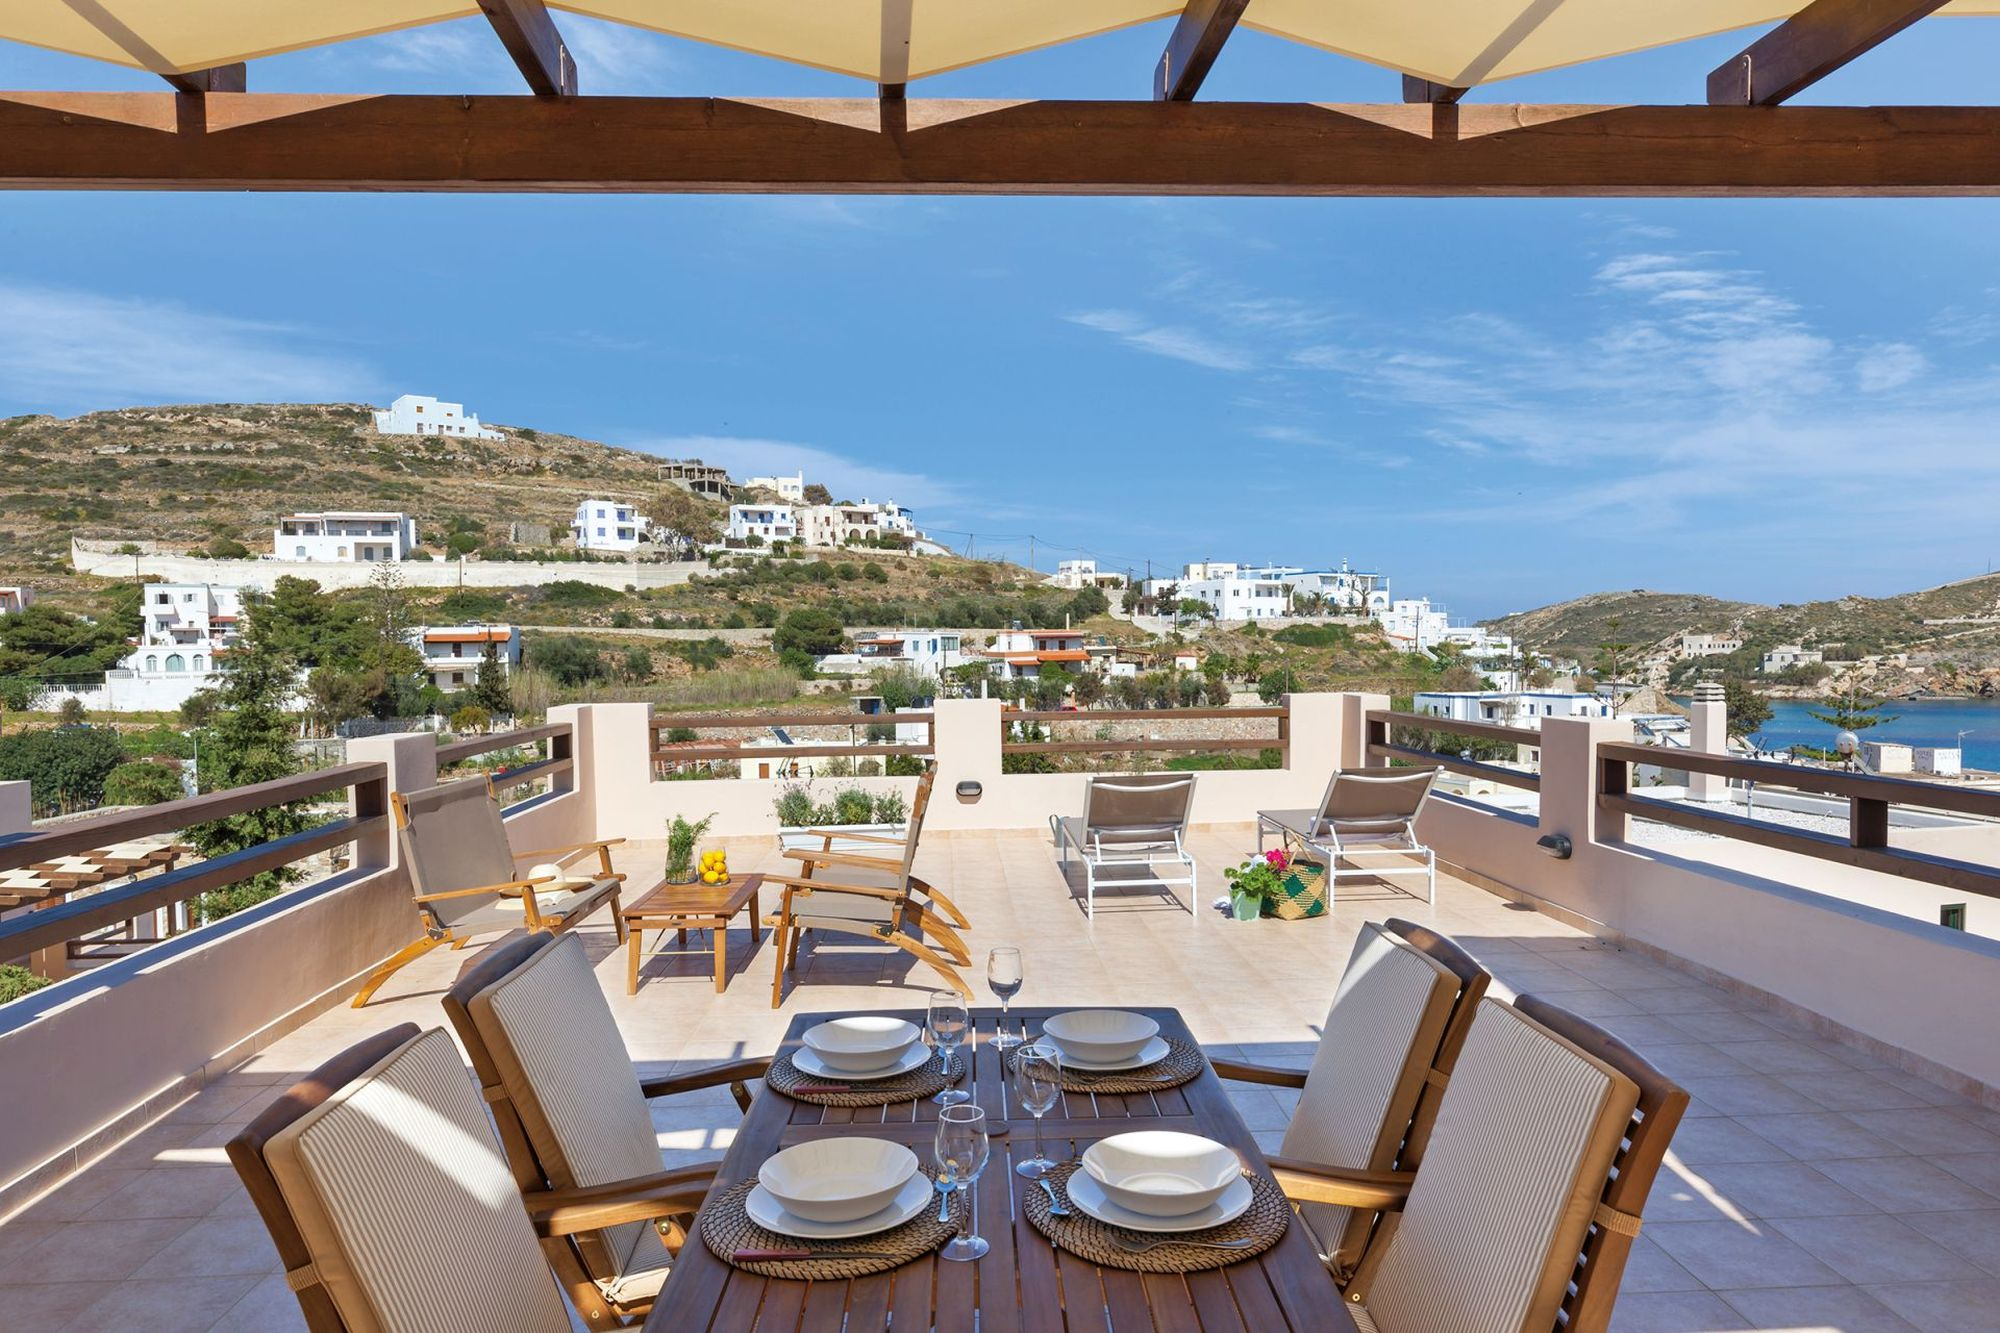 Spacious sea view veranda with pergola fully furnished with a dining table, a lounge and two sunbeds.